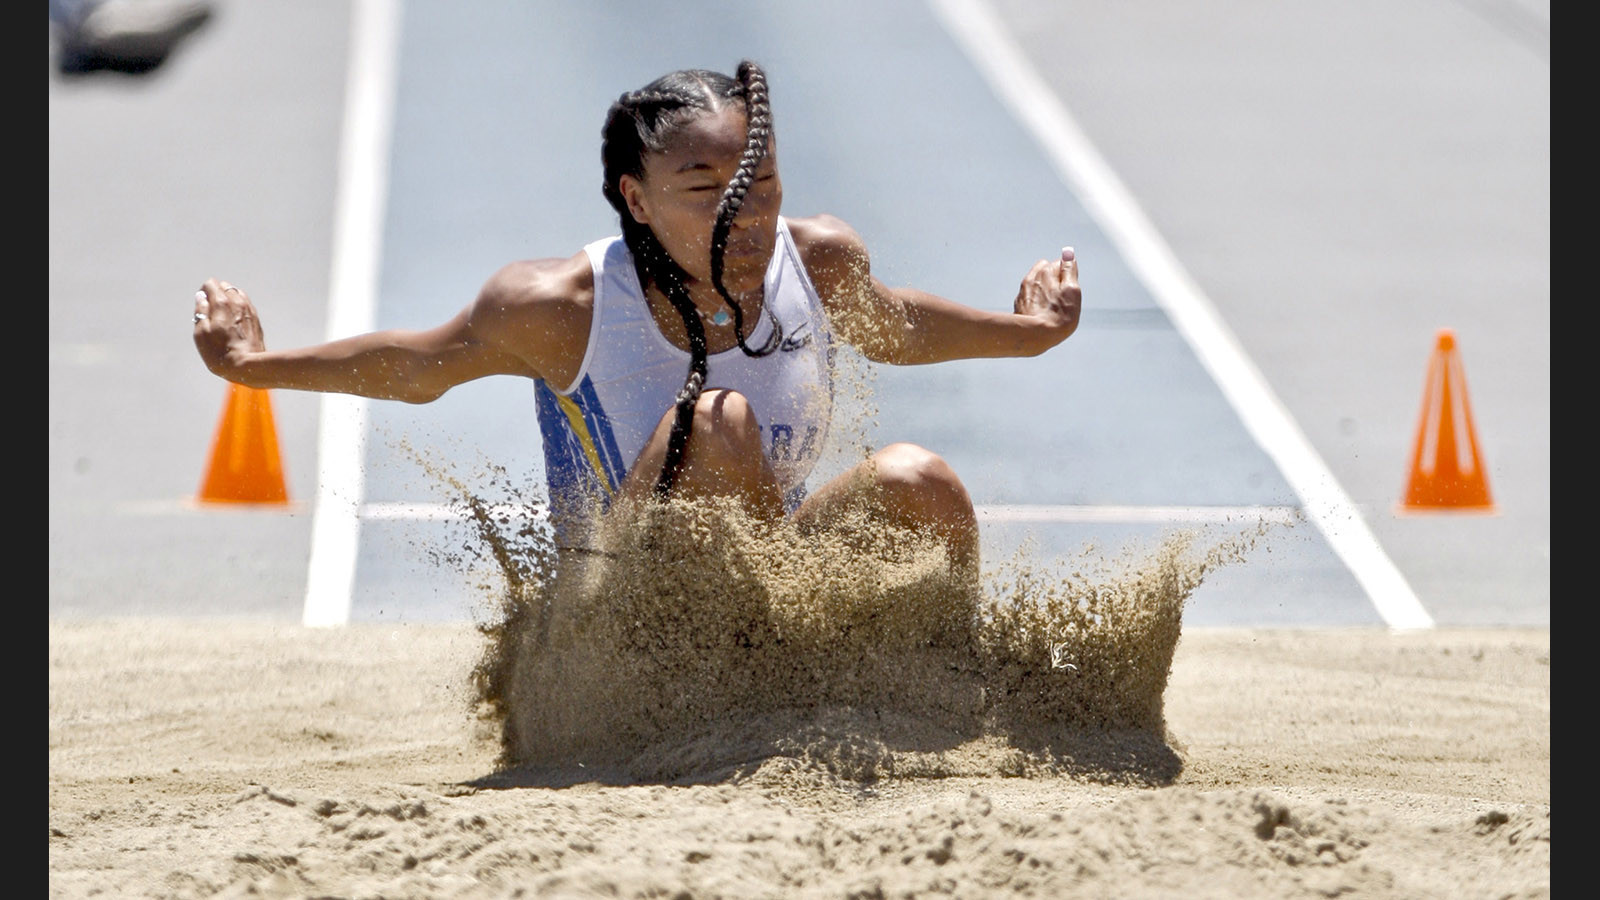 High temperatures and heated competition are expected at state track and field championships